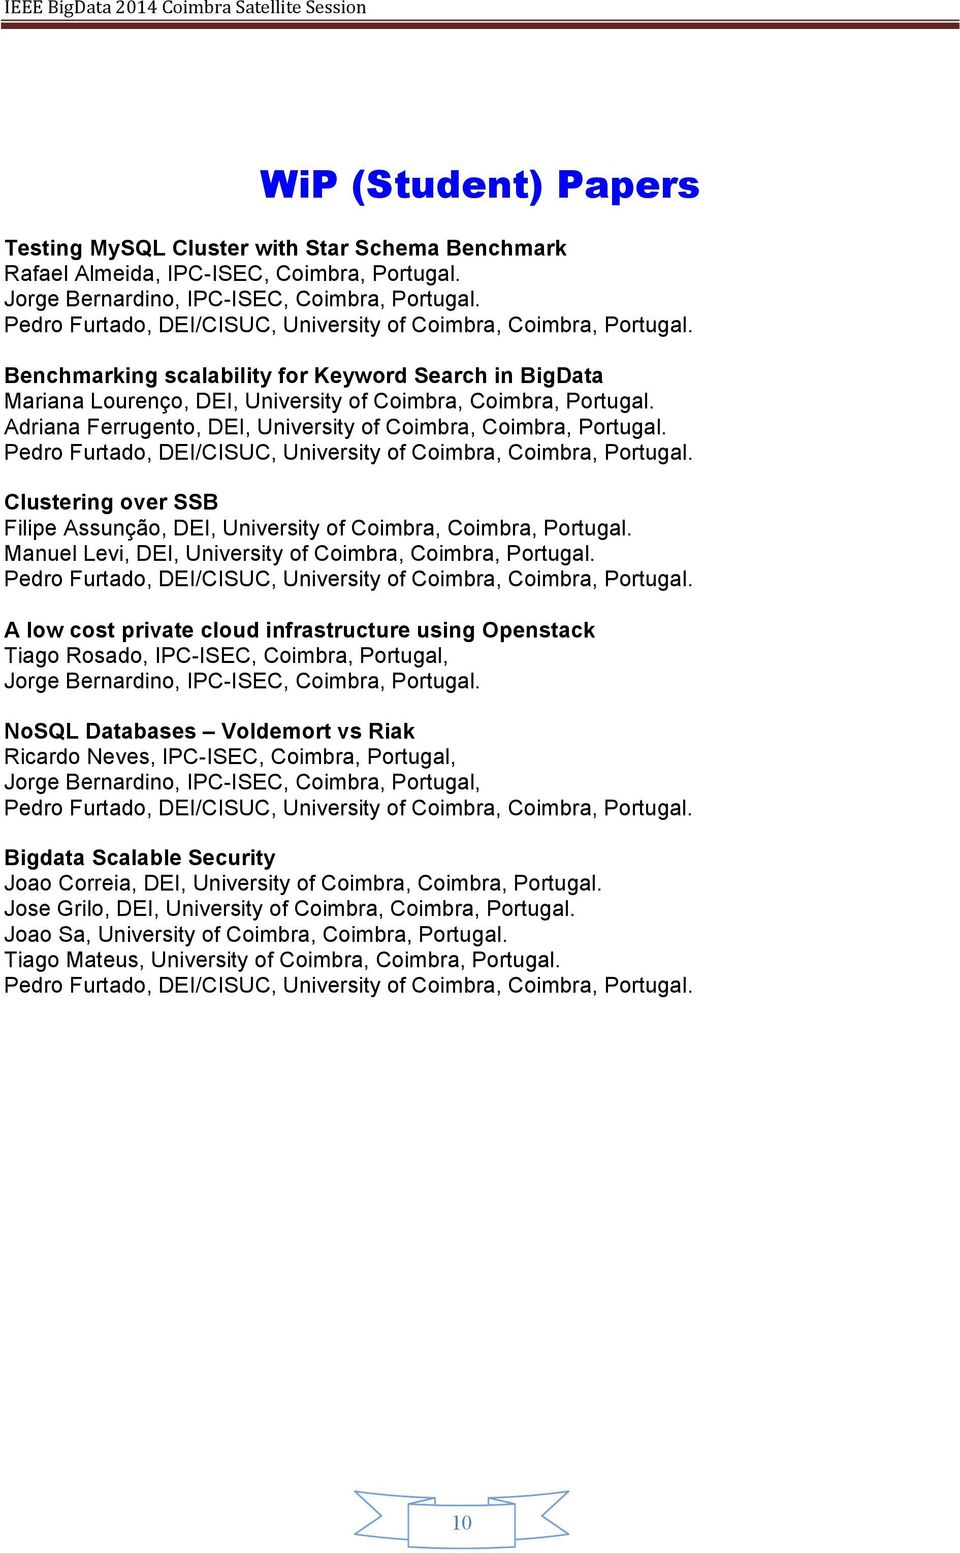 Clustering over SSB Filipe Assunção, DEI, University of Coimbra, Coimbra, Portugal. Manuel Levi, DEI, University of Coimbra, Coimbra, Portugal.